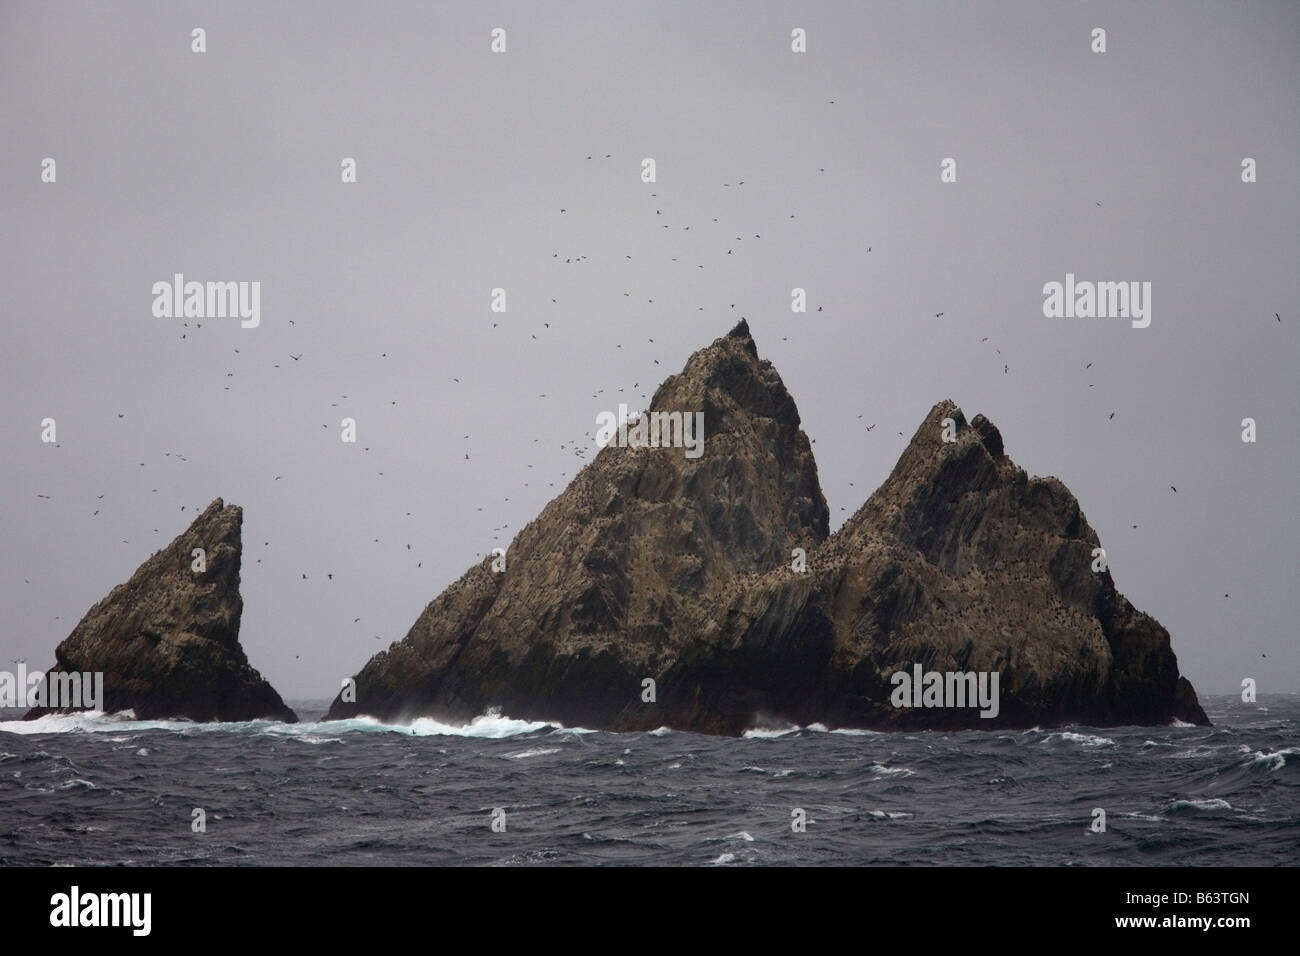 Shag Rocks in middle of Scotia Sea, South Atlantic Ocean Stock Photo